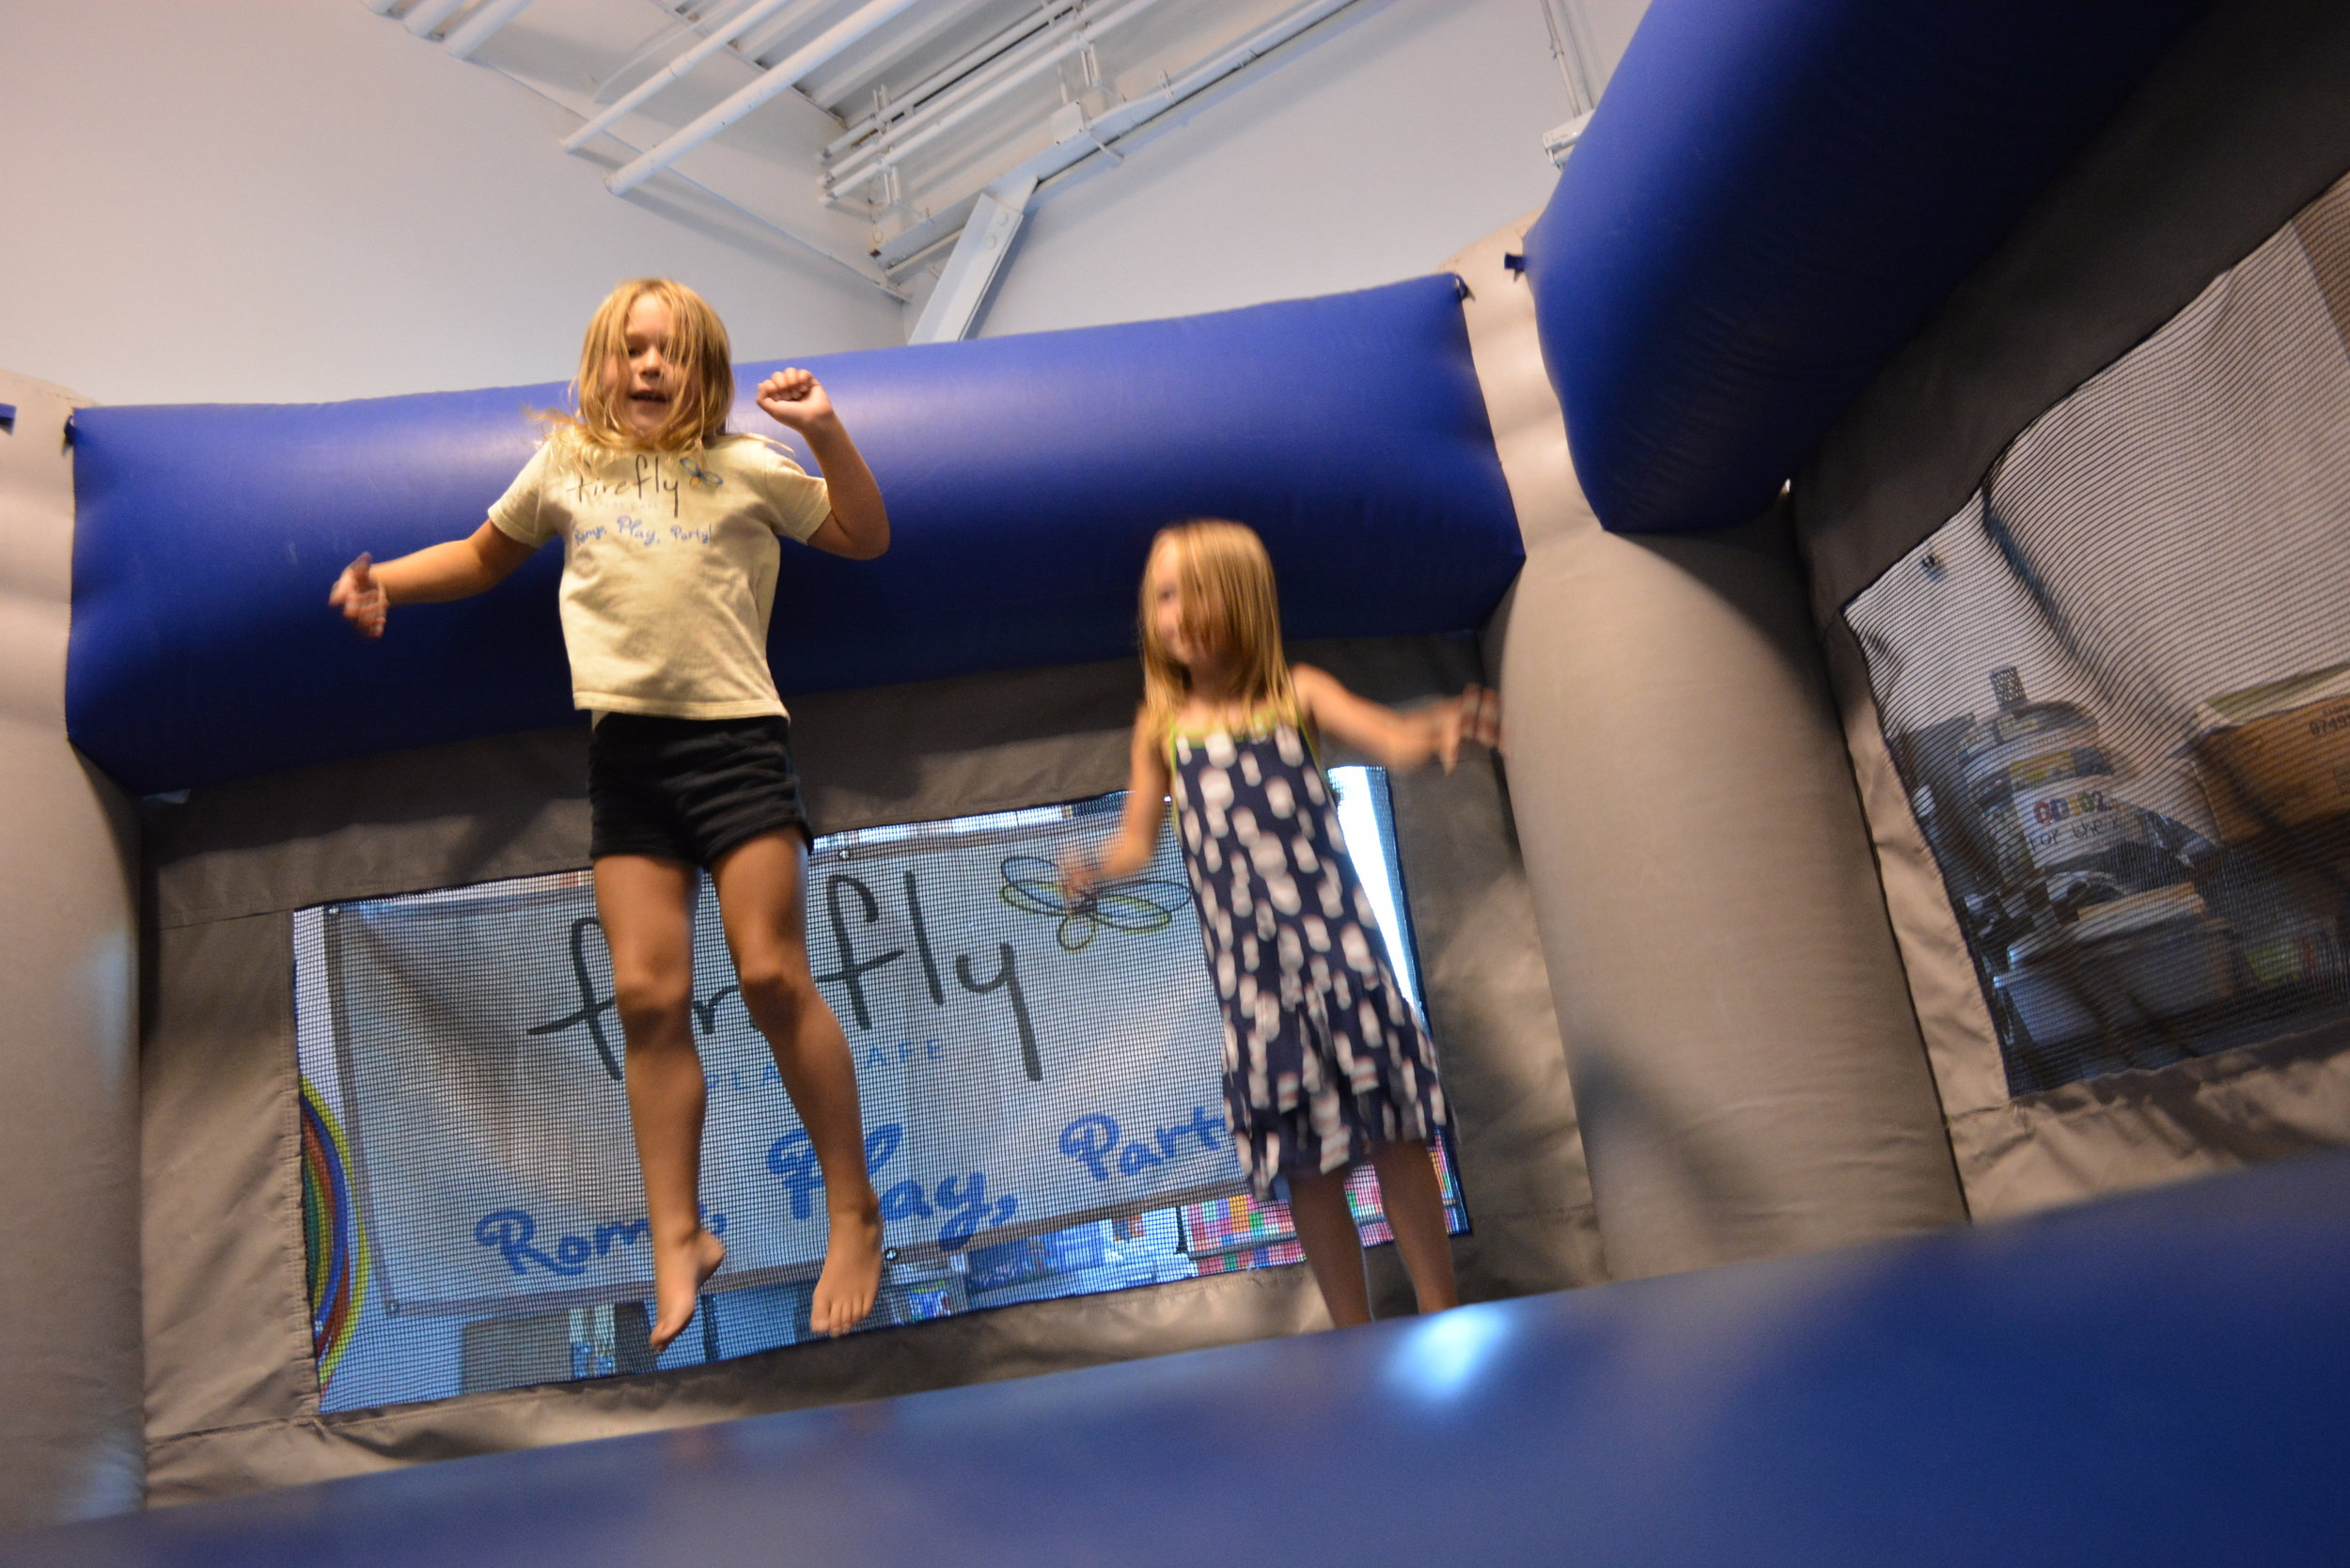 ROMP! - Kiddos can join the fun during our open play hours. It's easy to drop in anytime, pay admission and start playing!